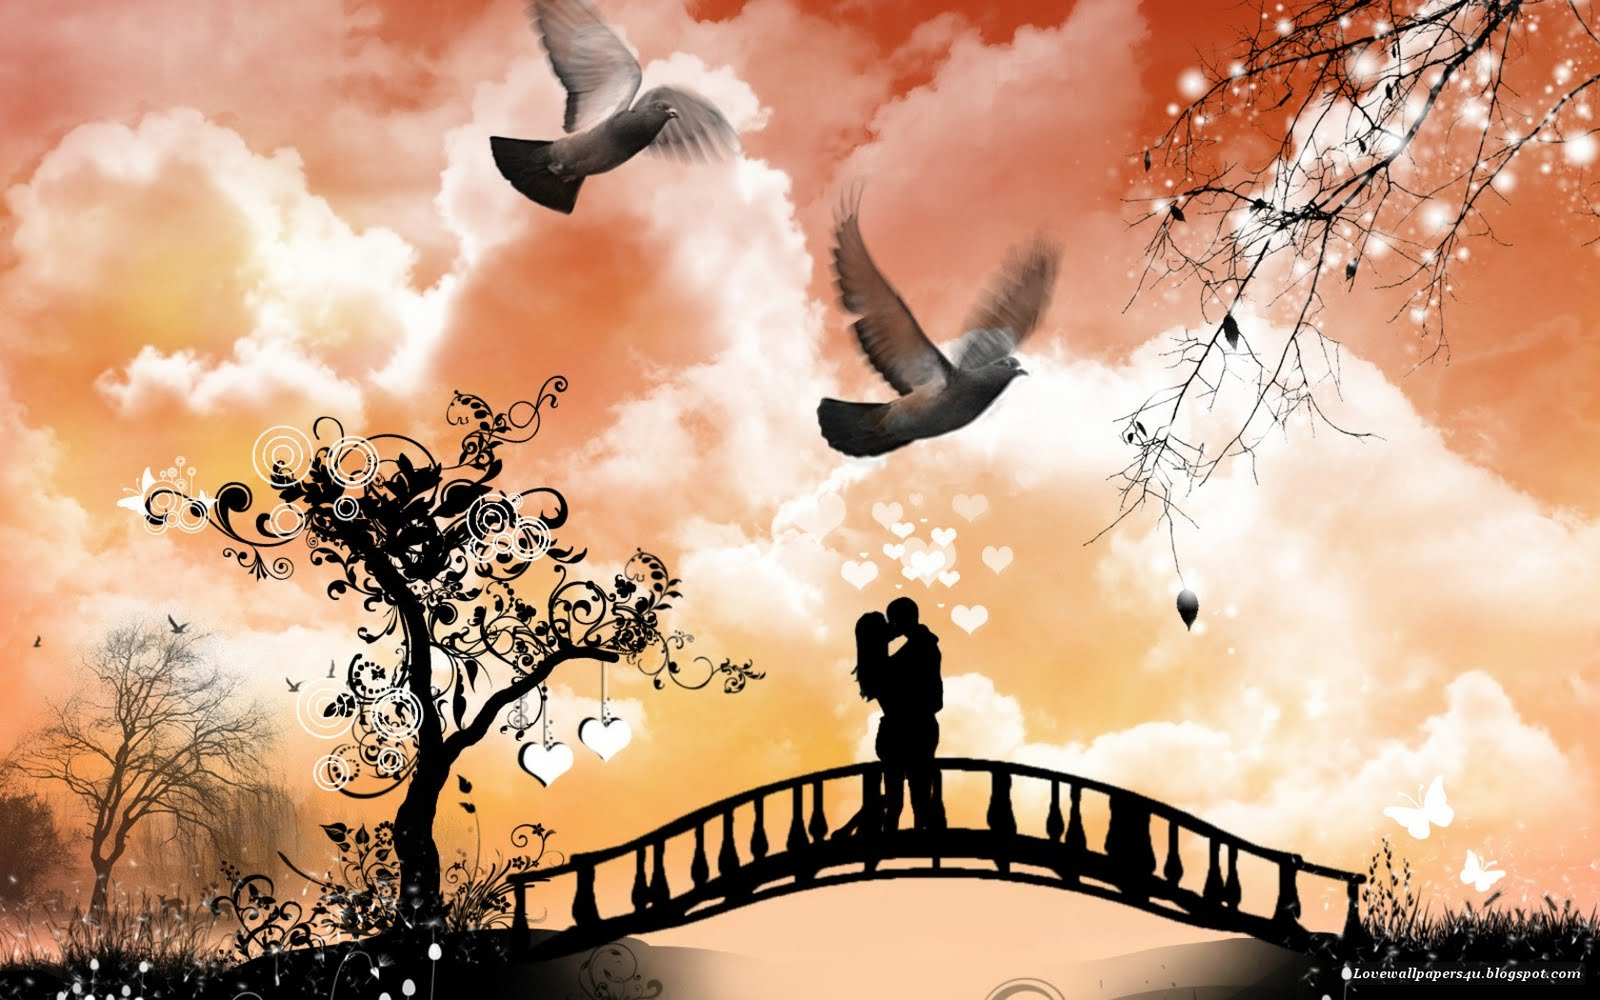 Beautiful Love Wallpaper Hd: Free Beautiful Desktop Wallpapers,Background Wallpapers